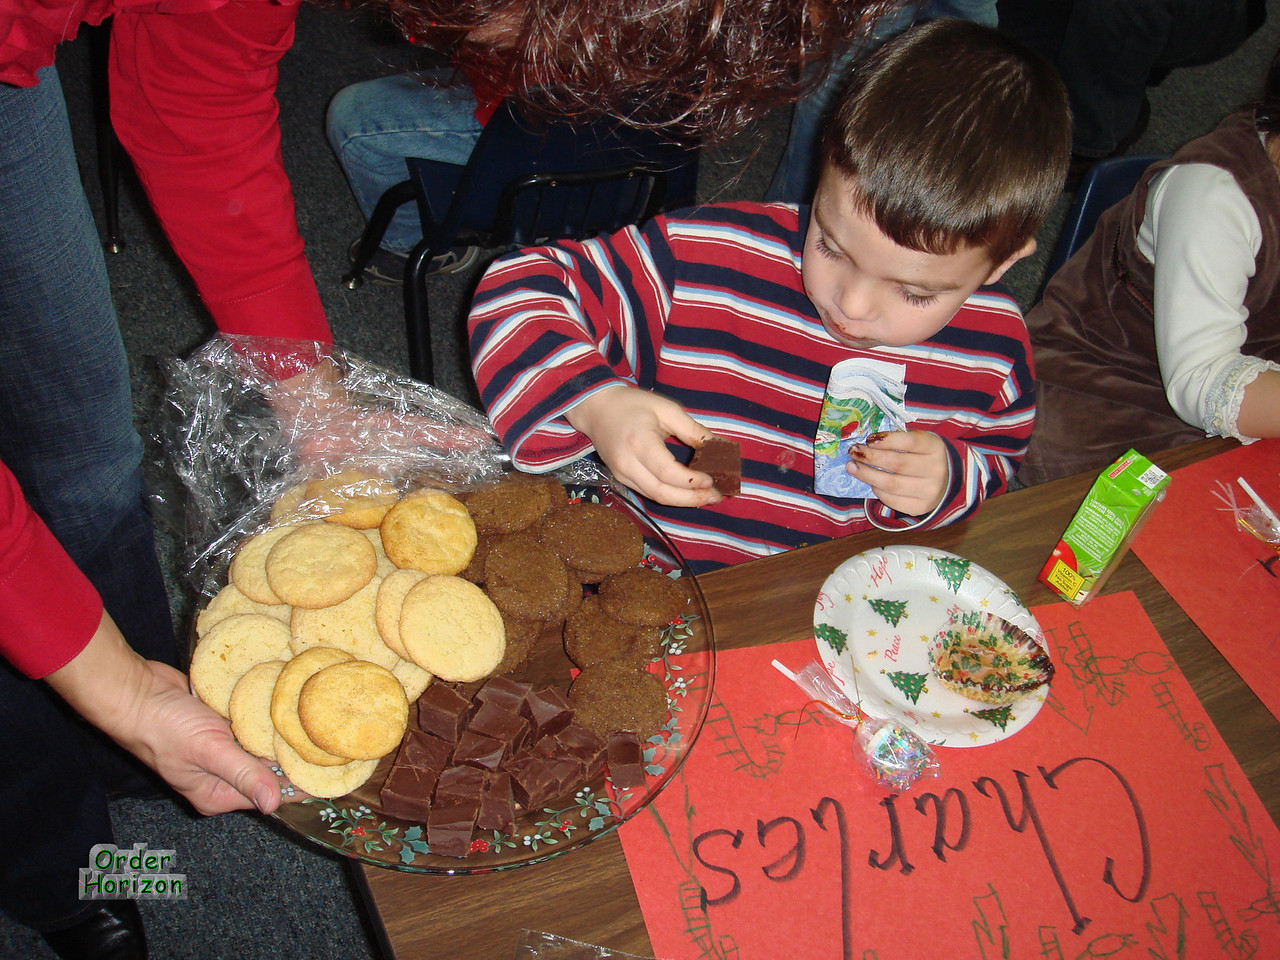 Grabbing some Mom-made cookies at the school party